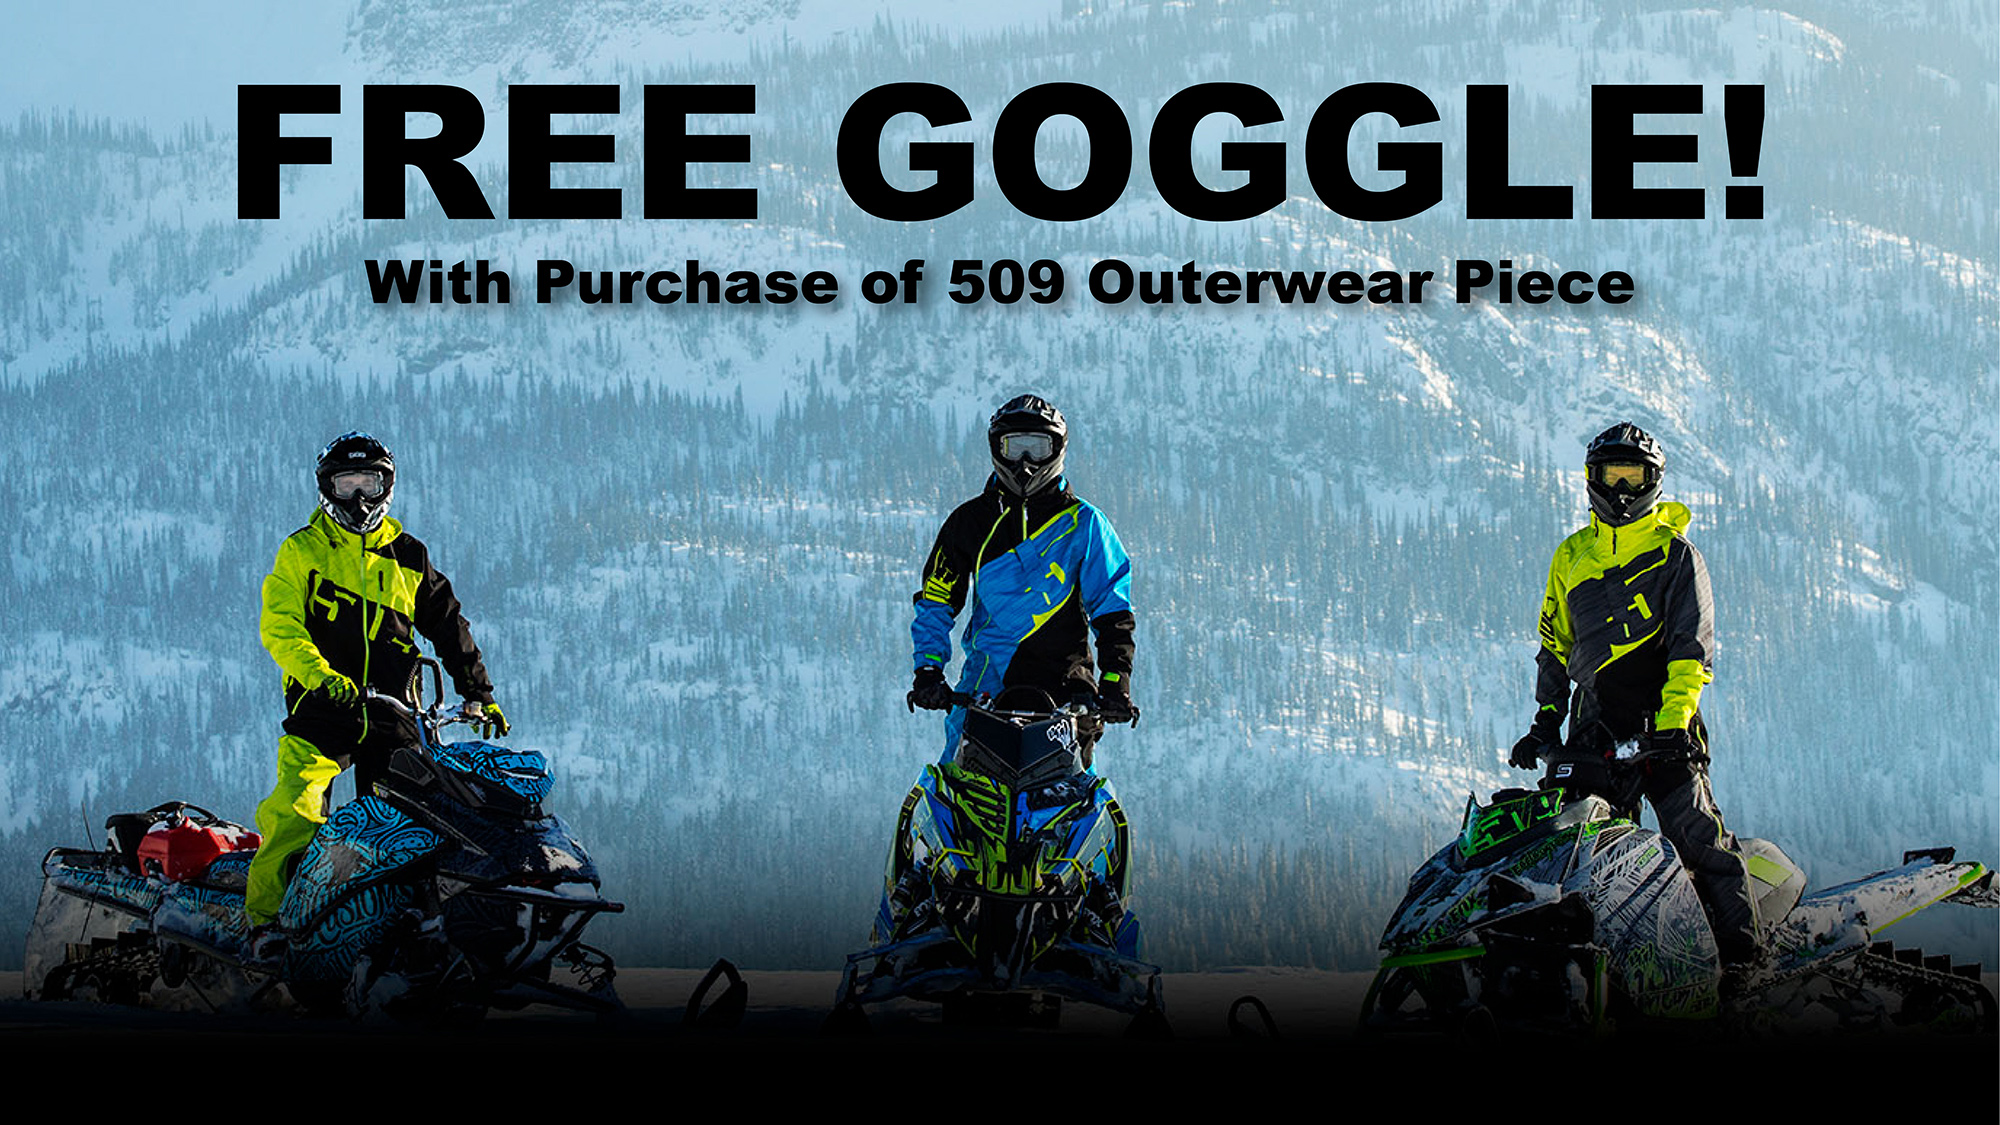 Free 509 Goggle w/ Outerwear Purchase!